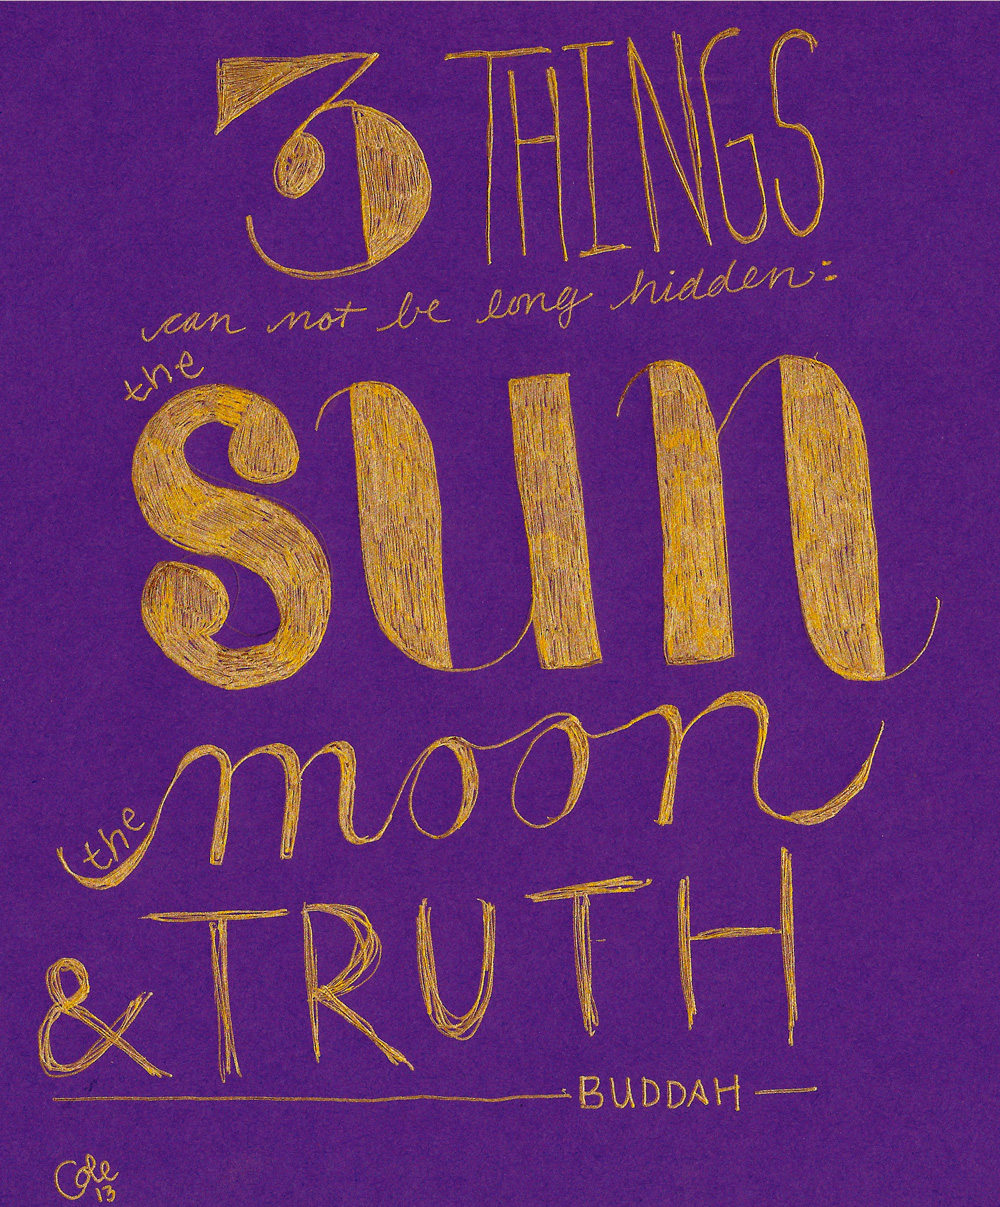 3 things buddha quote